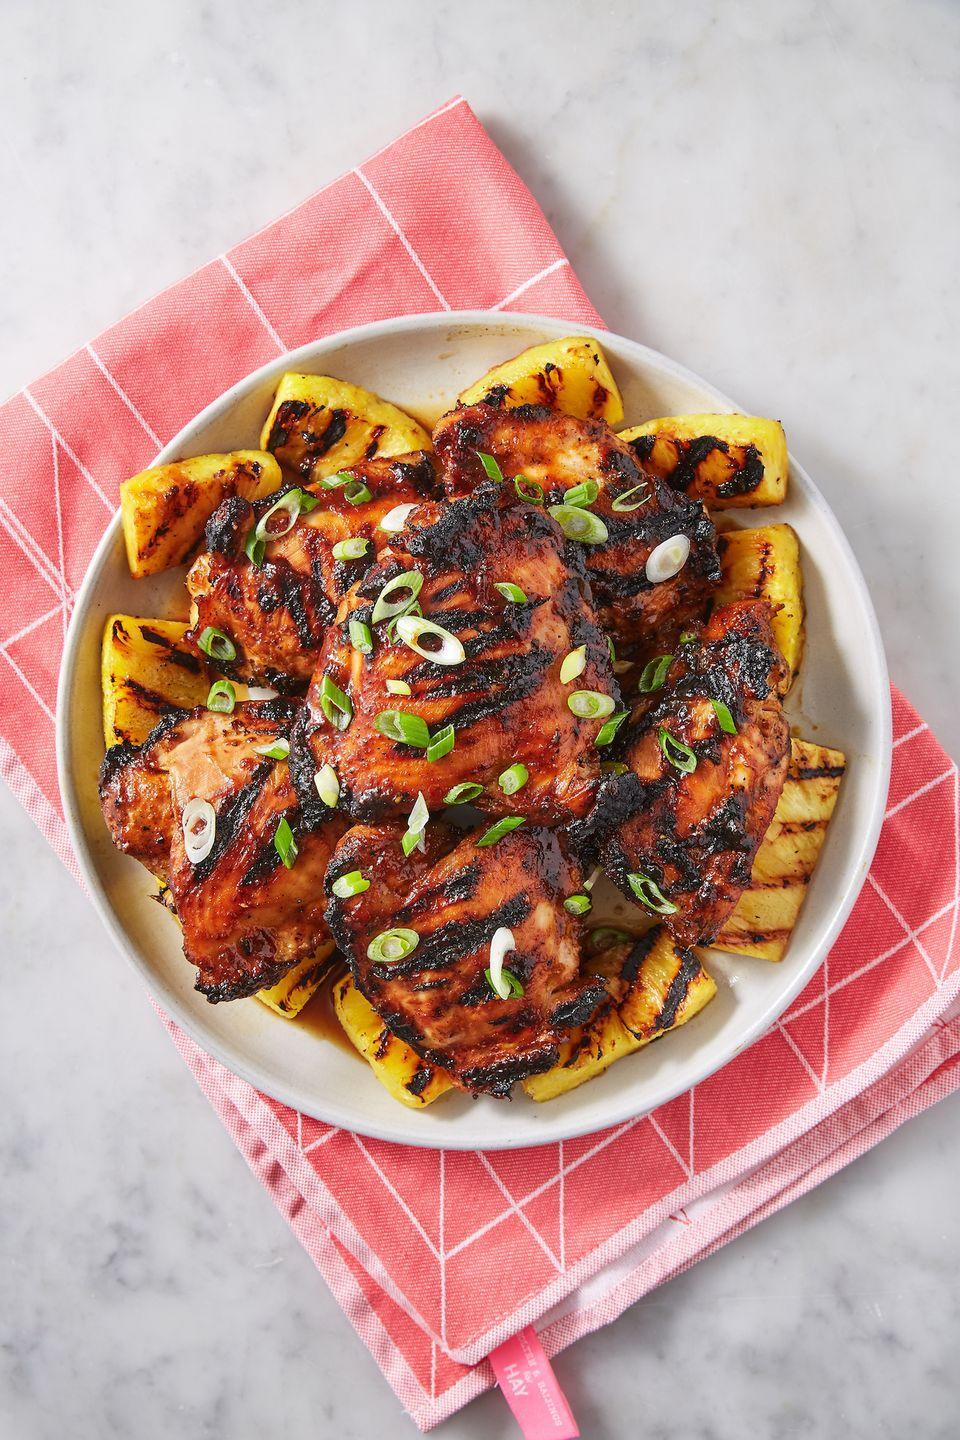 """<p>The grilled pineapple kicks things up a notch. </p><p>Get the recipe from <a href=""""https://www.delish.com/cooking/recipe-ideas/a27972975/huli-huli-chicken-recipe/"""" rel=""""nofollow noopener"""" target=""""_blank"""" data-ylk=""""slk:Delish"""" class=""""link rapid-noclick-resp"""">Delish</a>.</p>"""